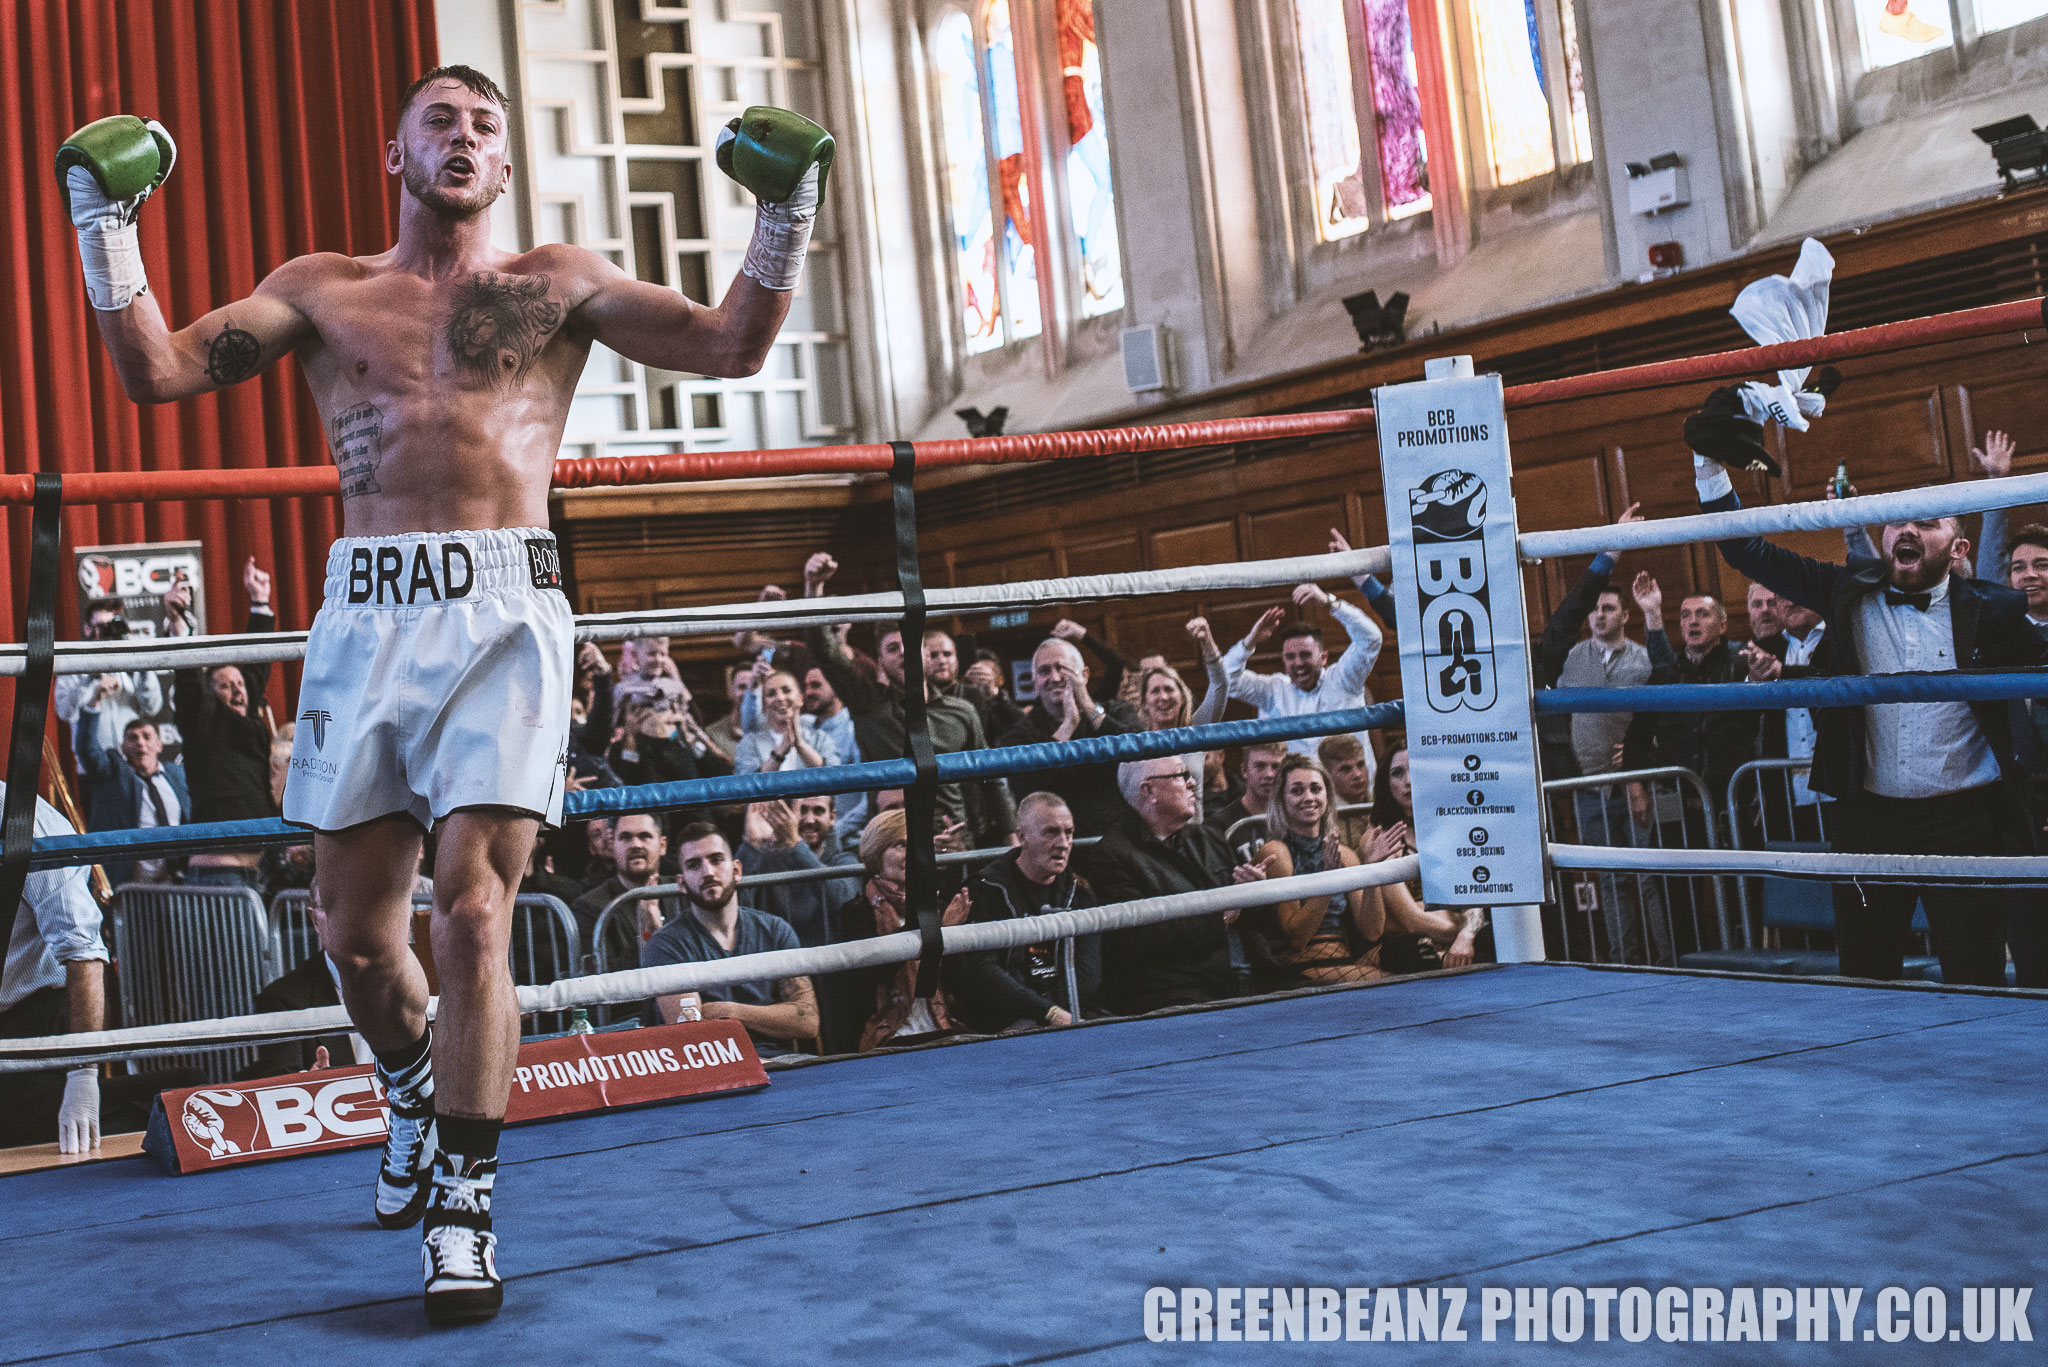 Brad Pauls UK boxing photos